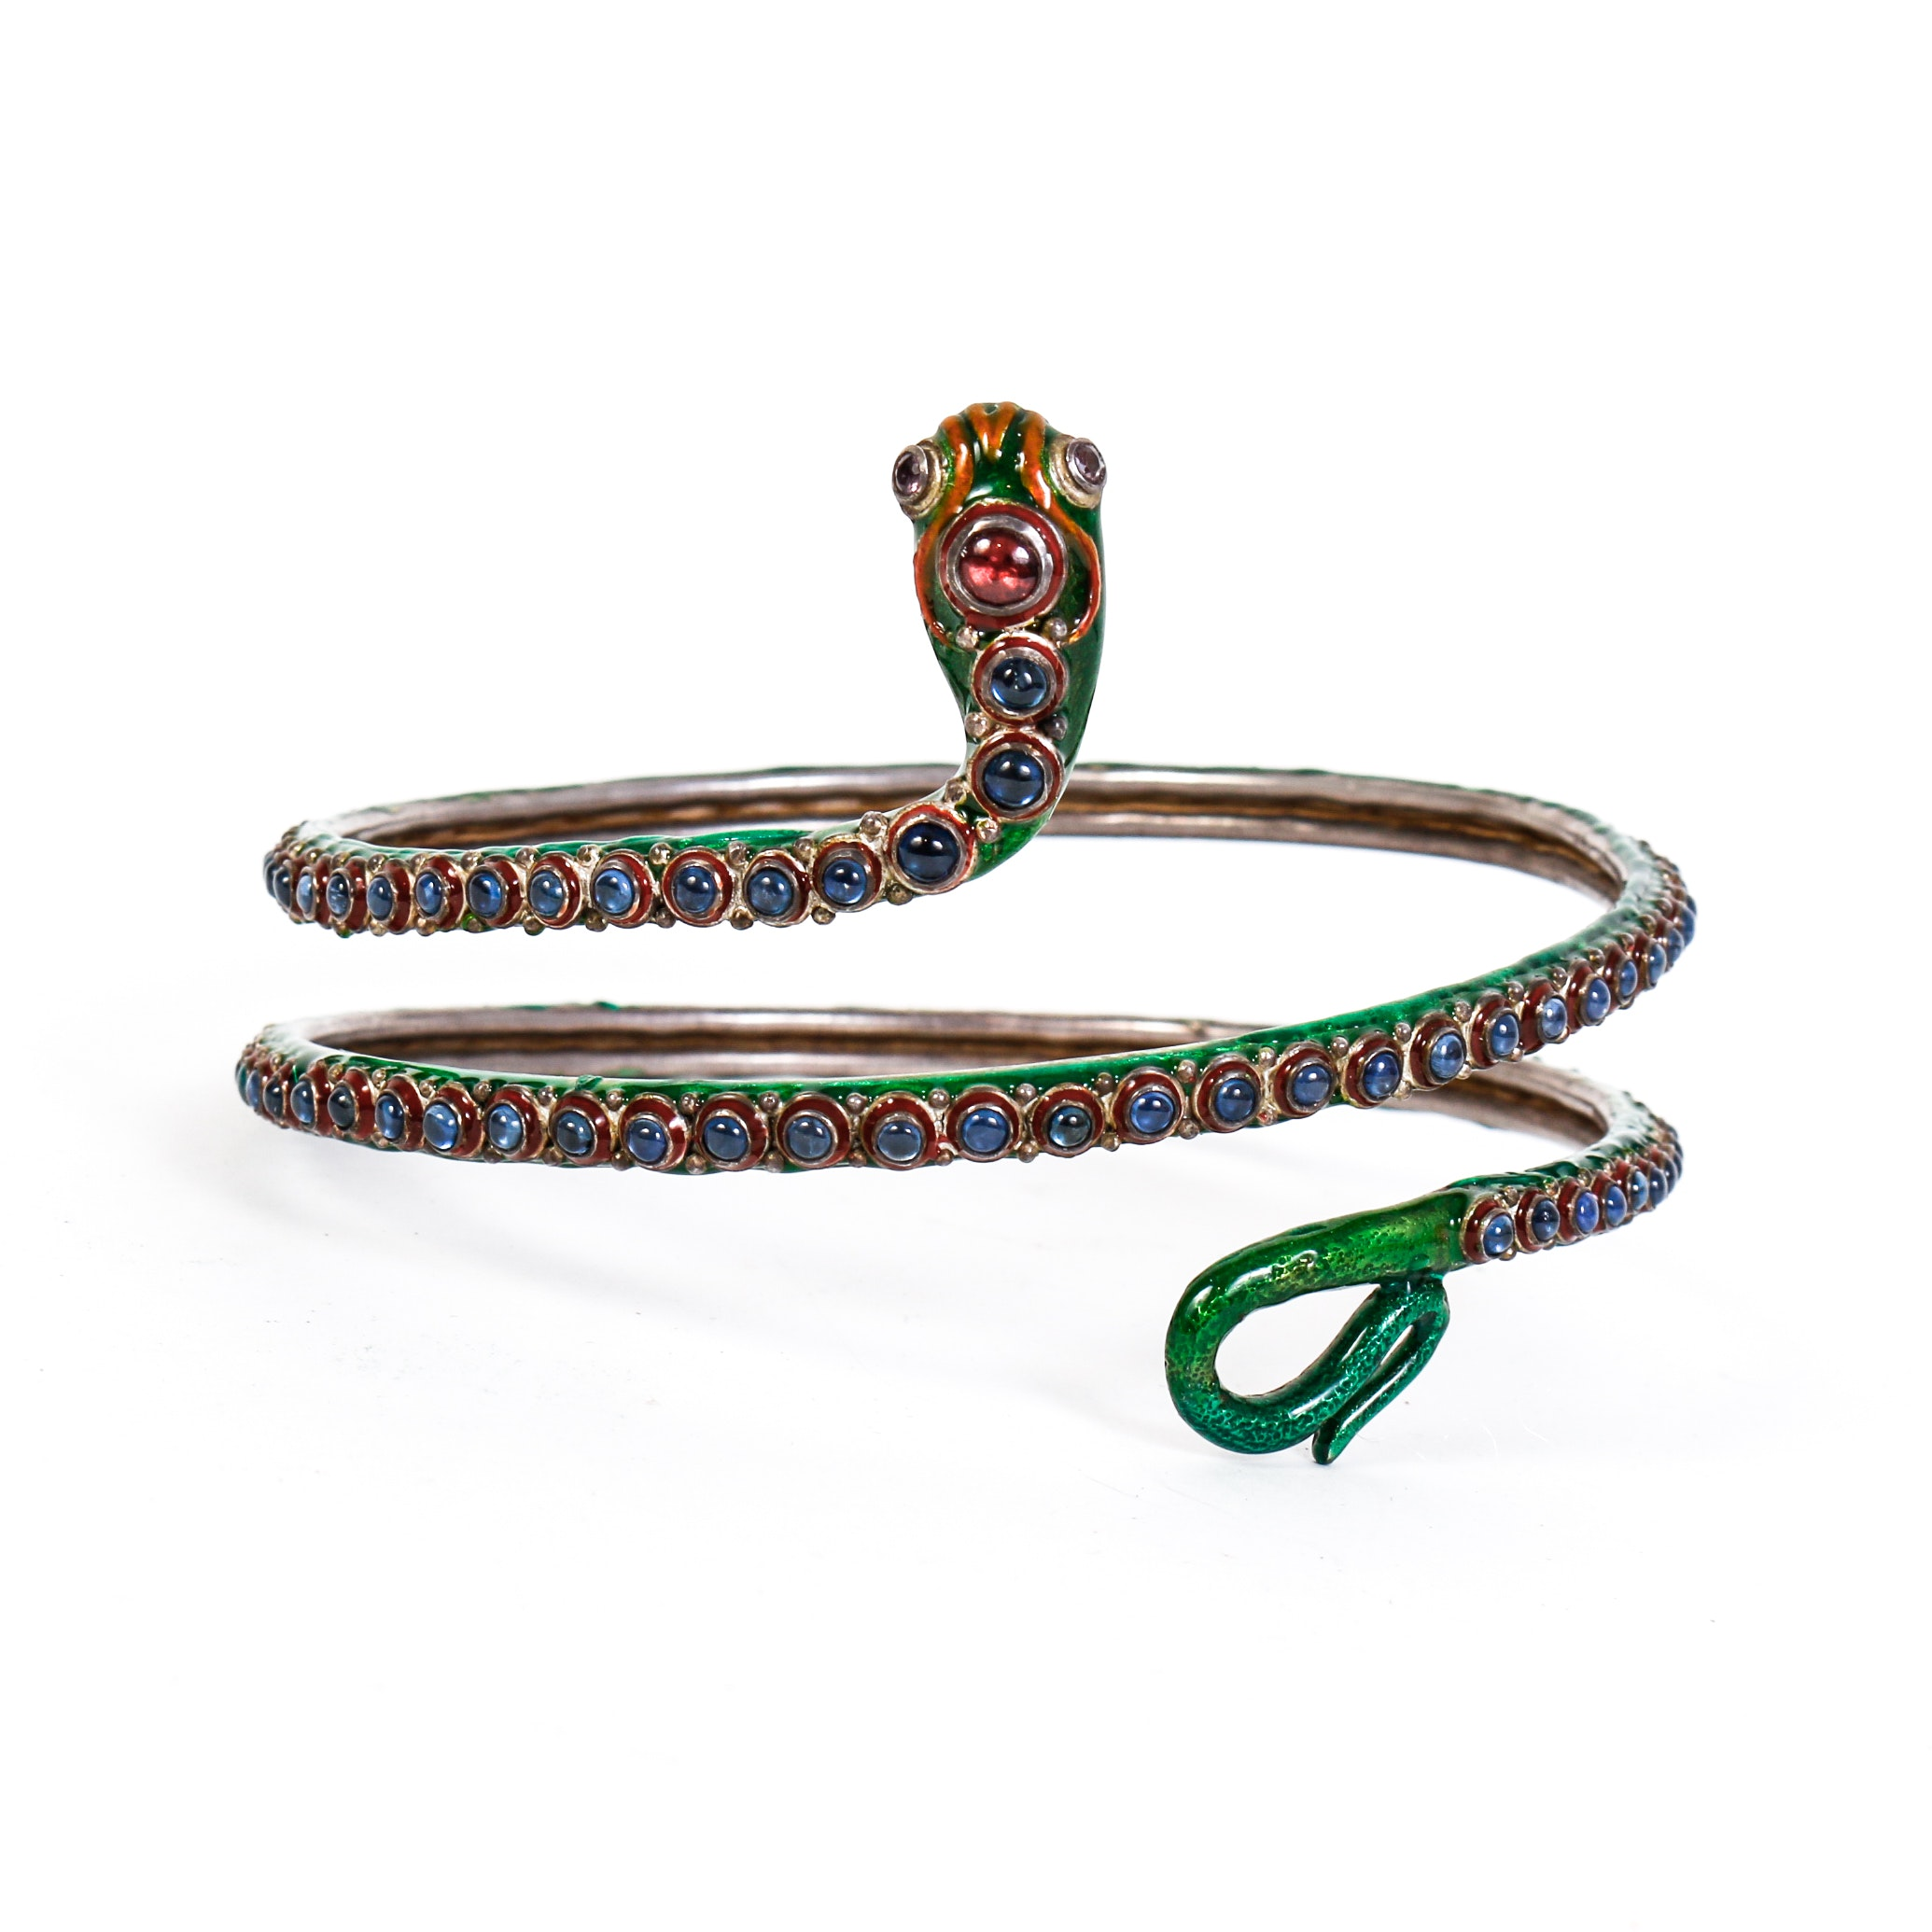 Vintage Multi-Stone, Enamel and Sterling Silver Snake Arm Cuff